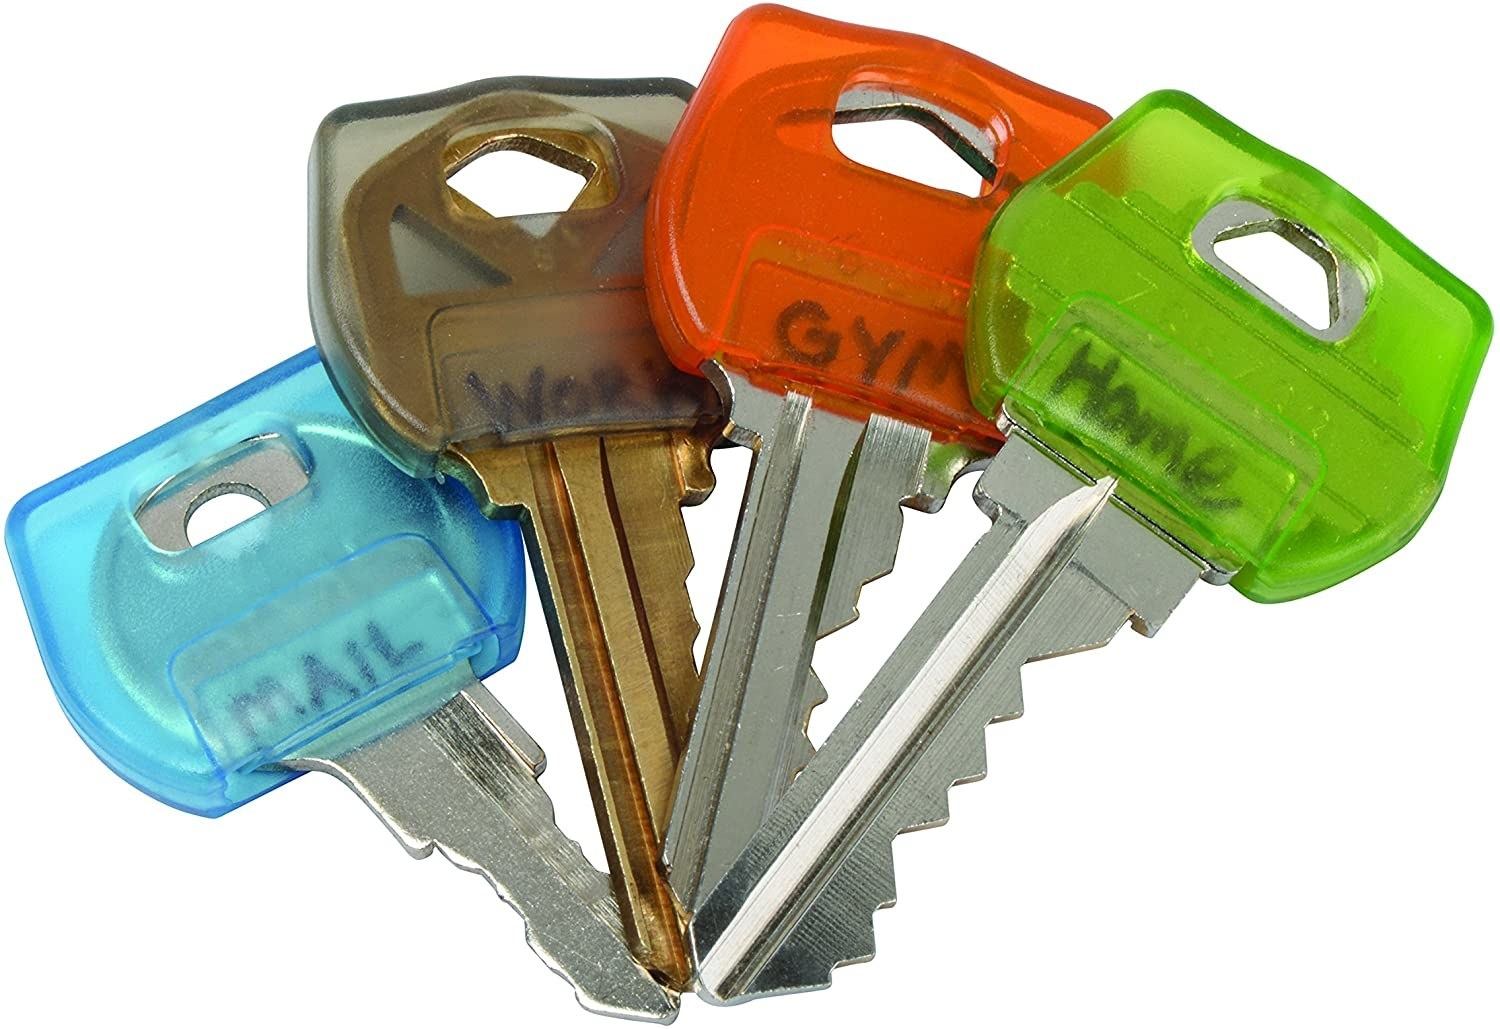 Four keys with plastic covers in different colours